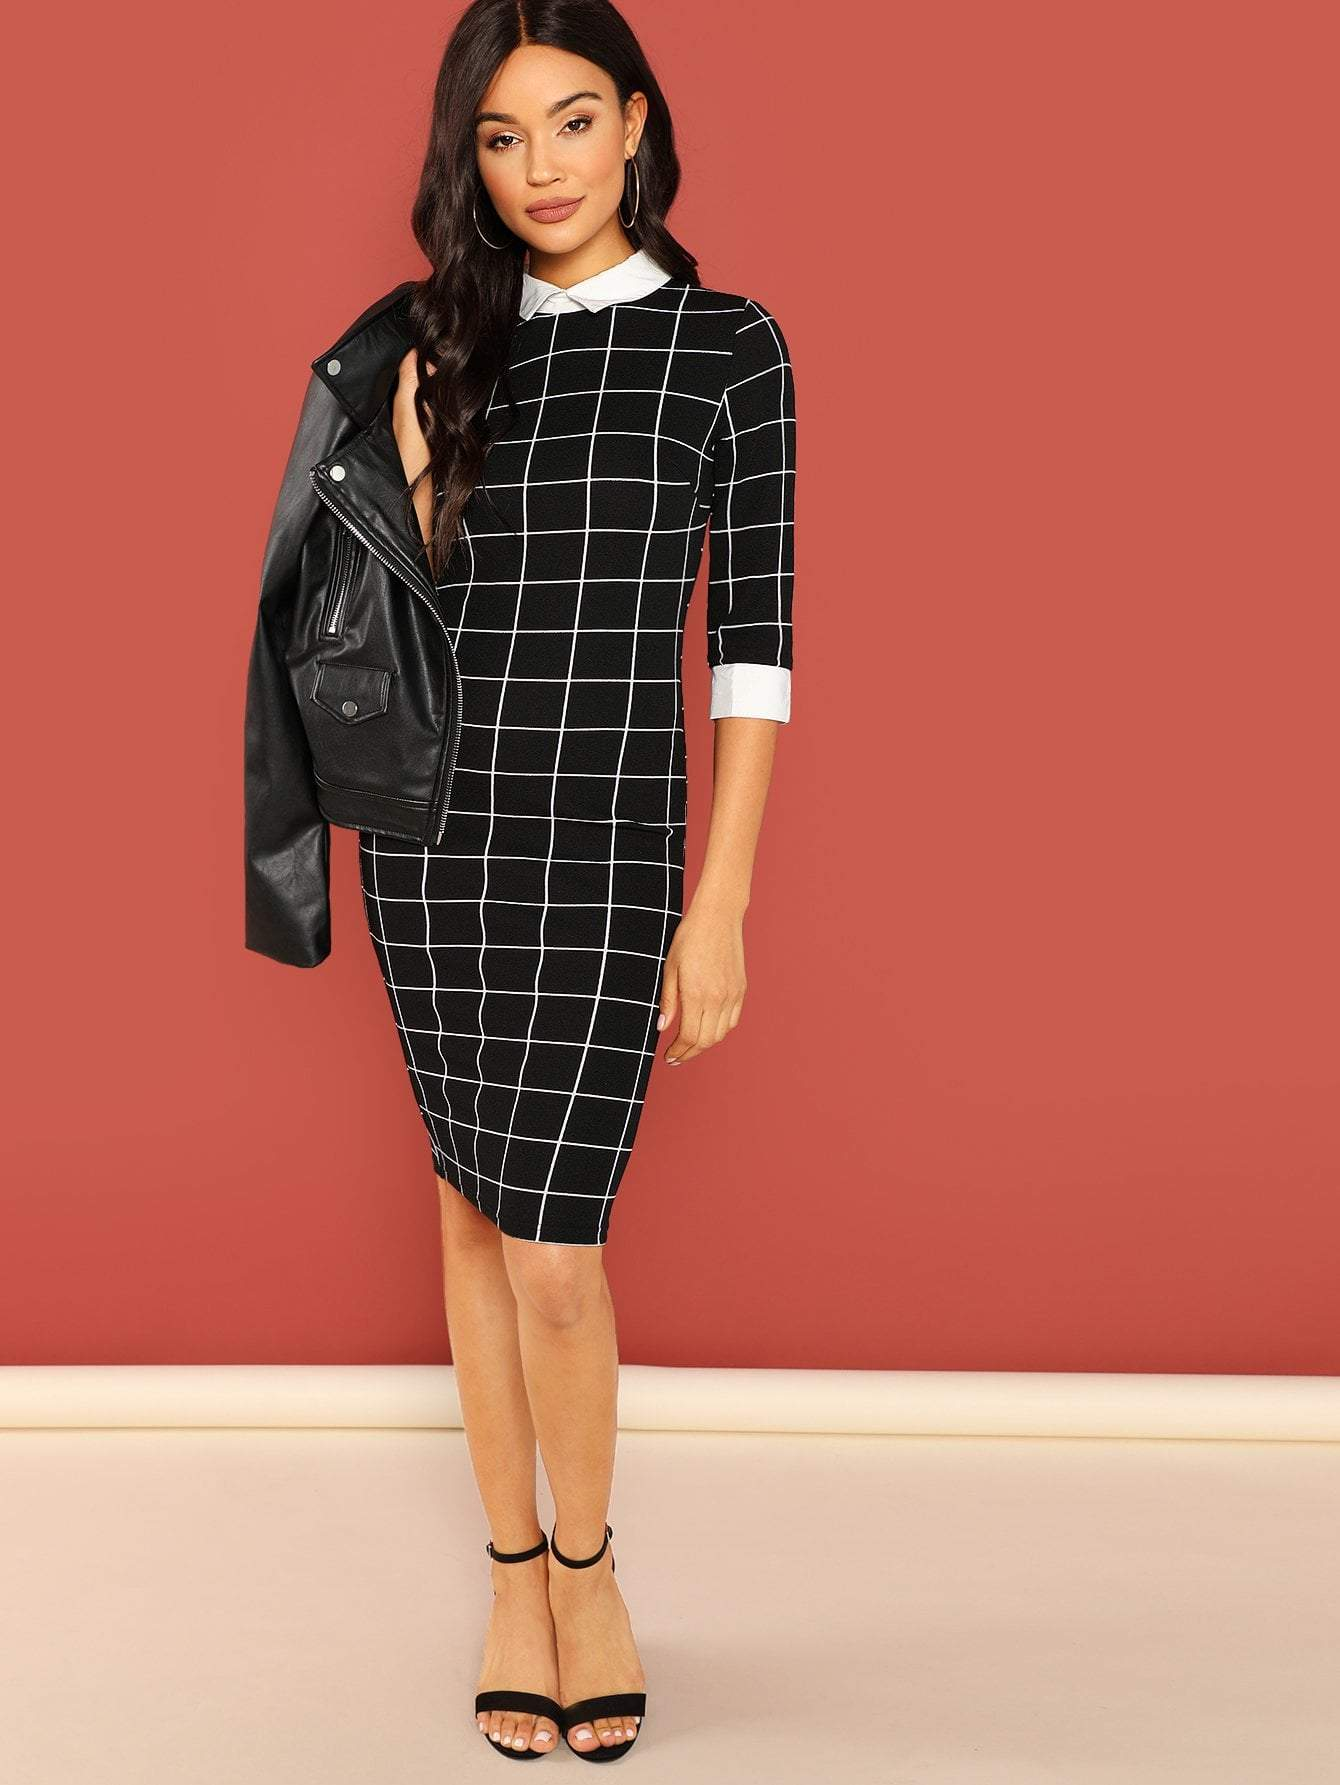 Contrast Slim Grid Dress - LoveSylvester